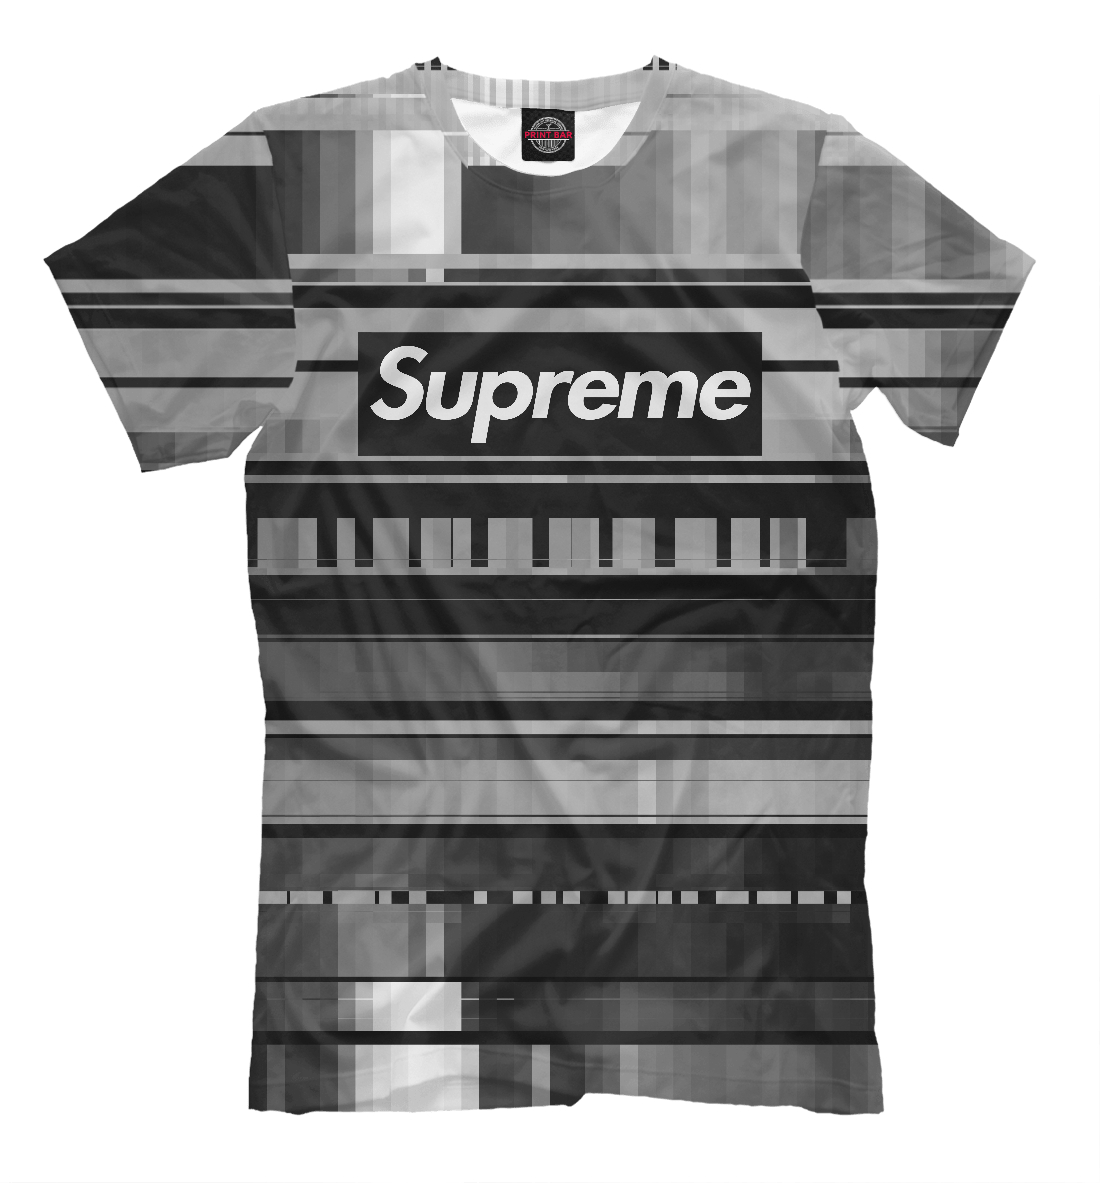 Купить Supreme Abstract Black&White, Printbar, Футболки, SPR-836407-fut-2